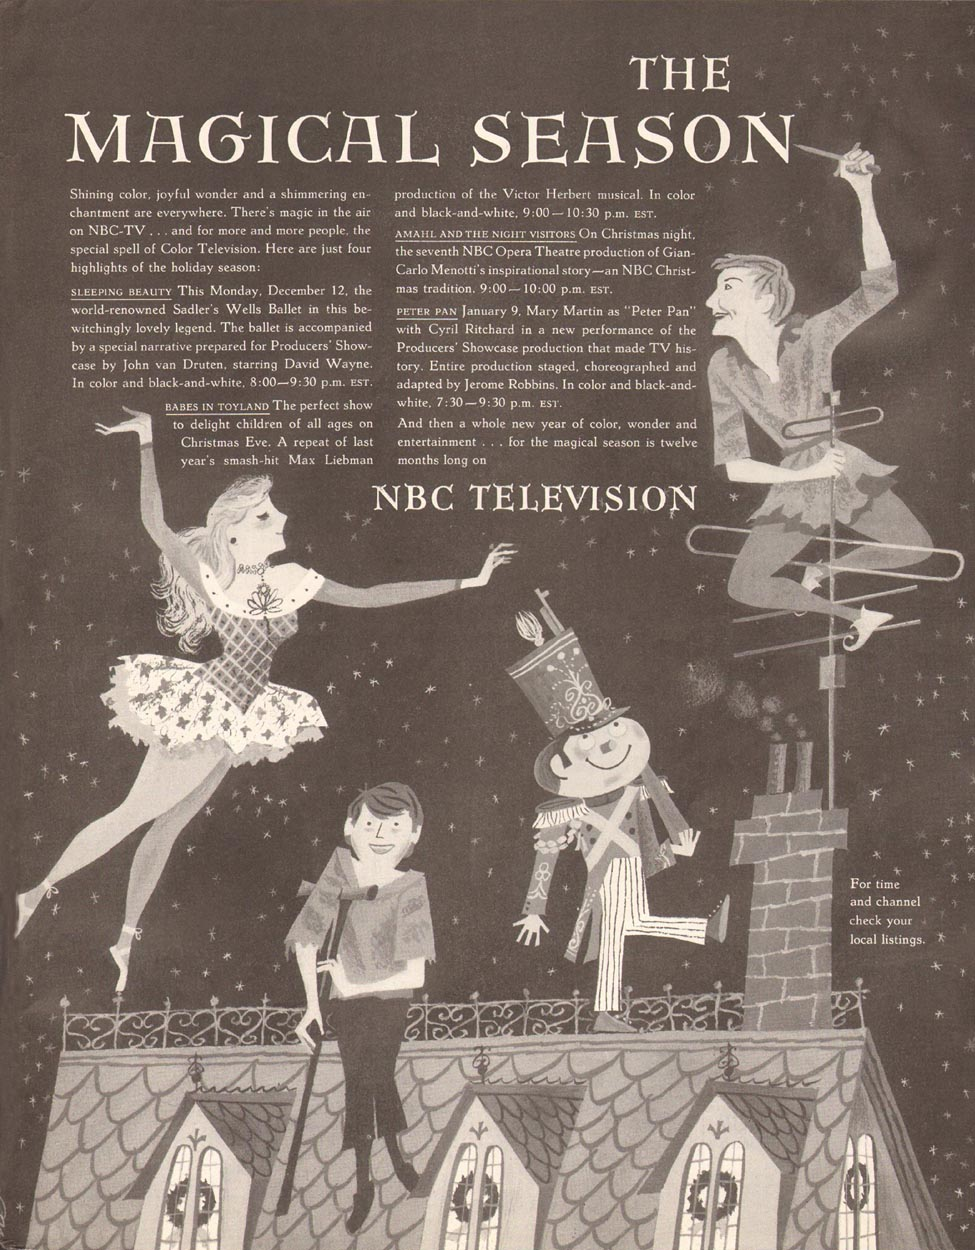 NBC TELEVISION NETWORK SATURDAY EVENING POST 12/20/1955 p. 123